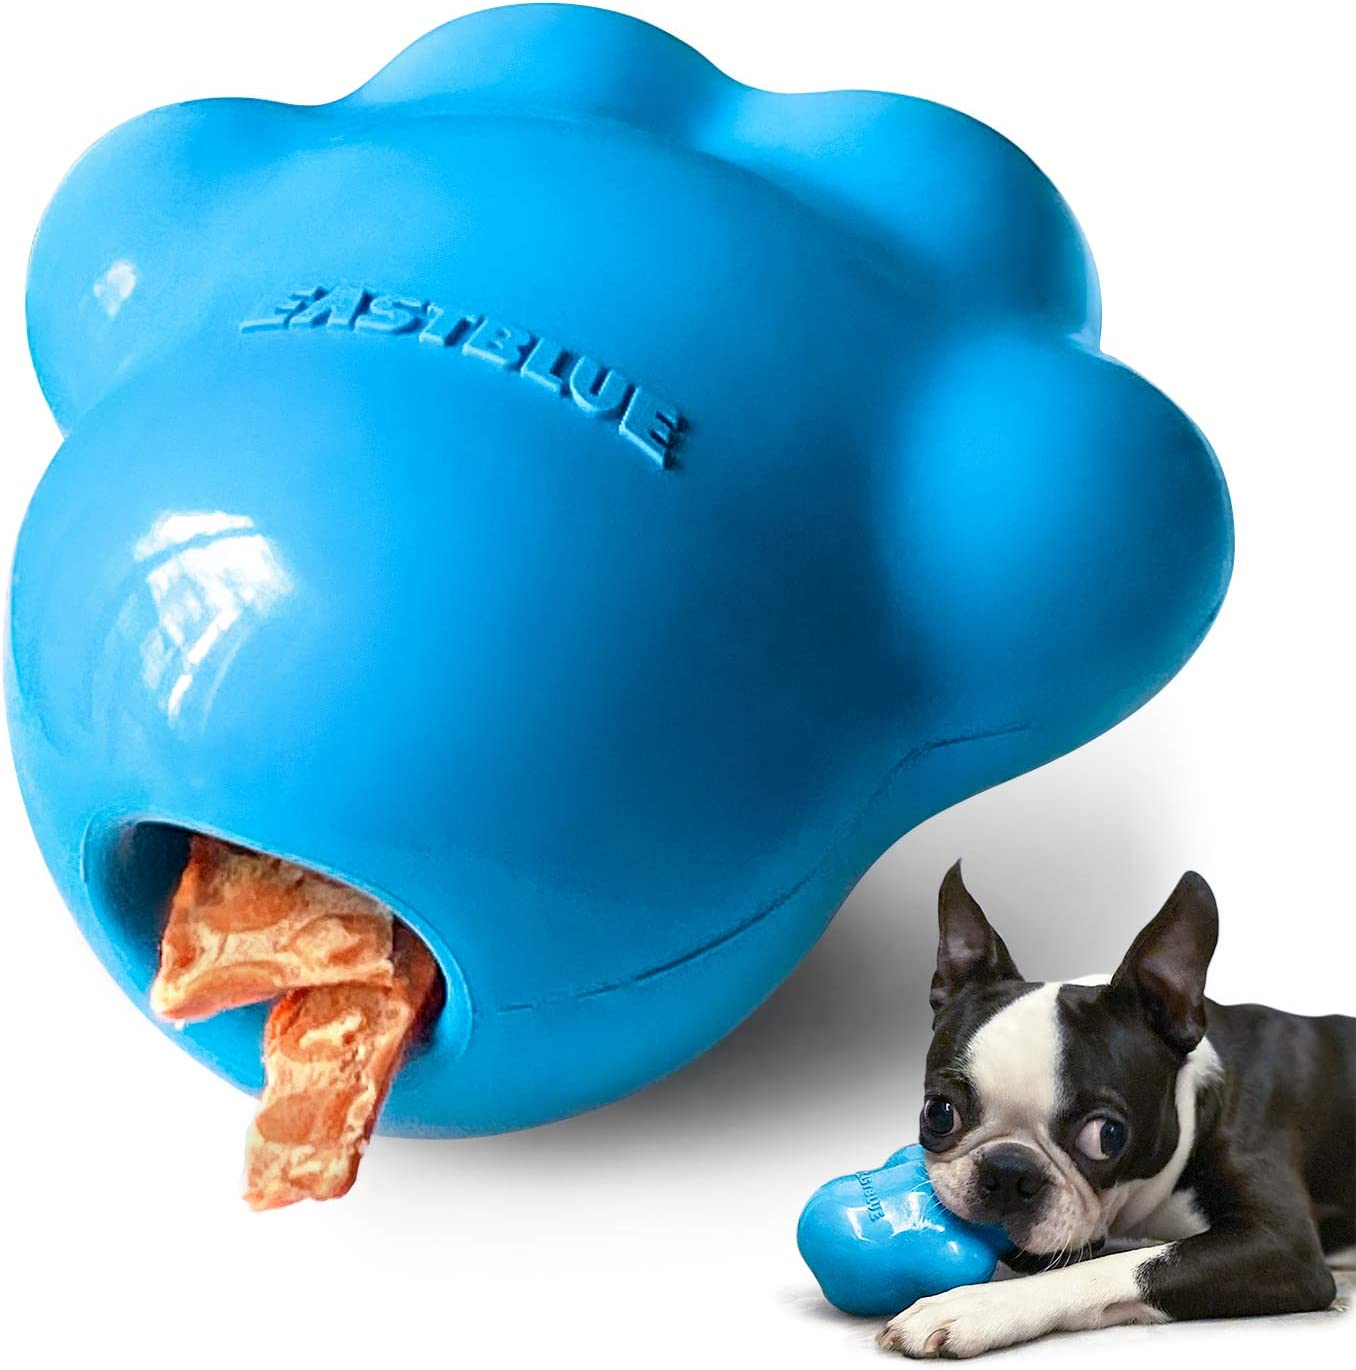 EASTBLUE Stuffable Dog chew Toys: Durable Rubber Ball for Aggressive chewers - Indestructible Puppy Puzzle Toy for Medium and Large Breed